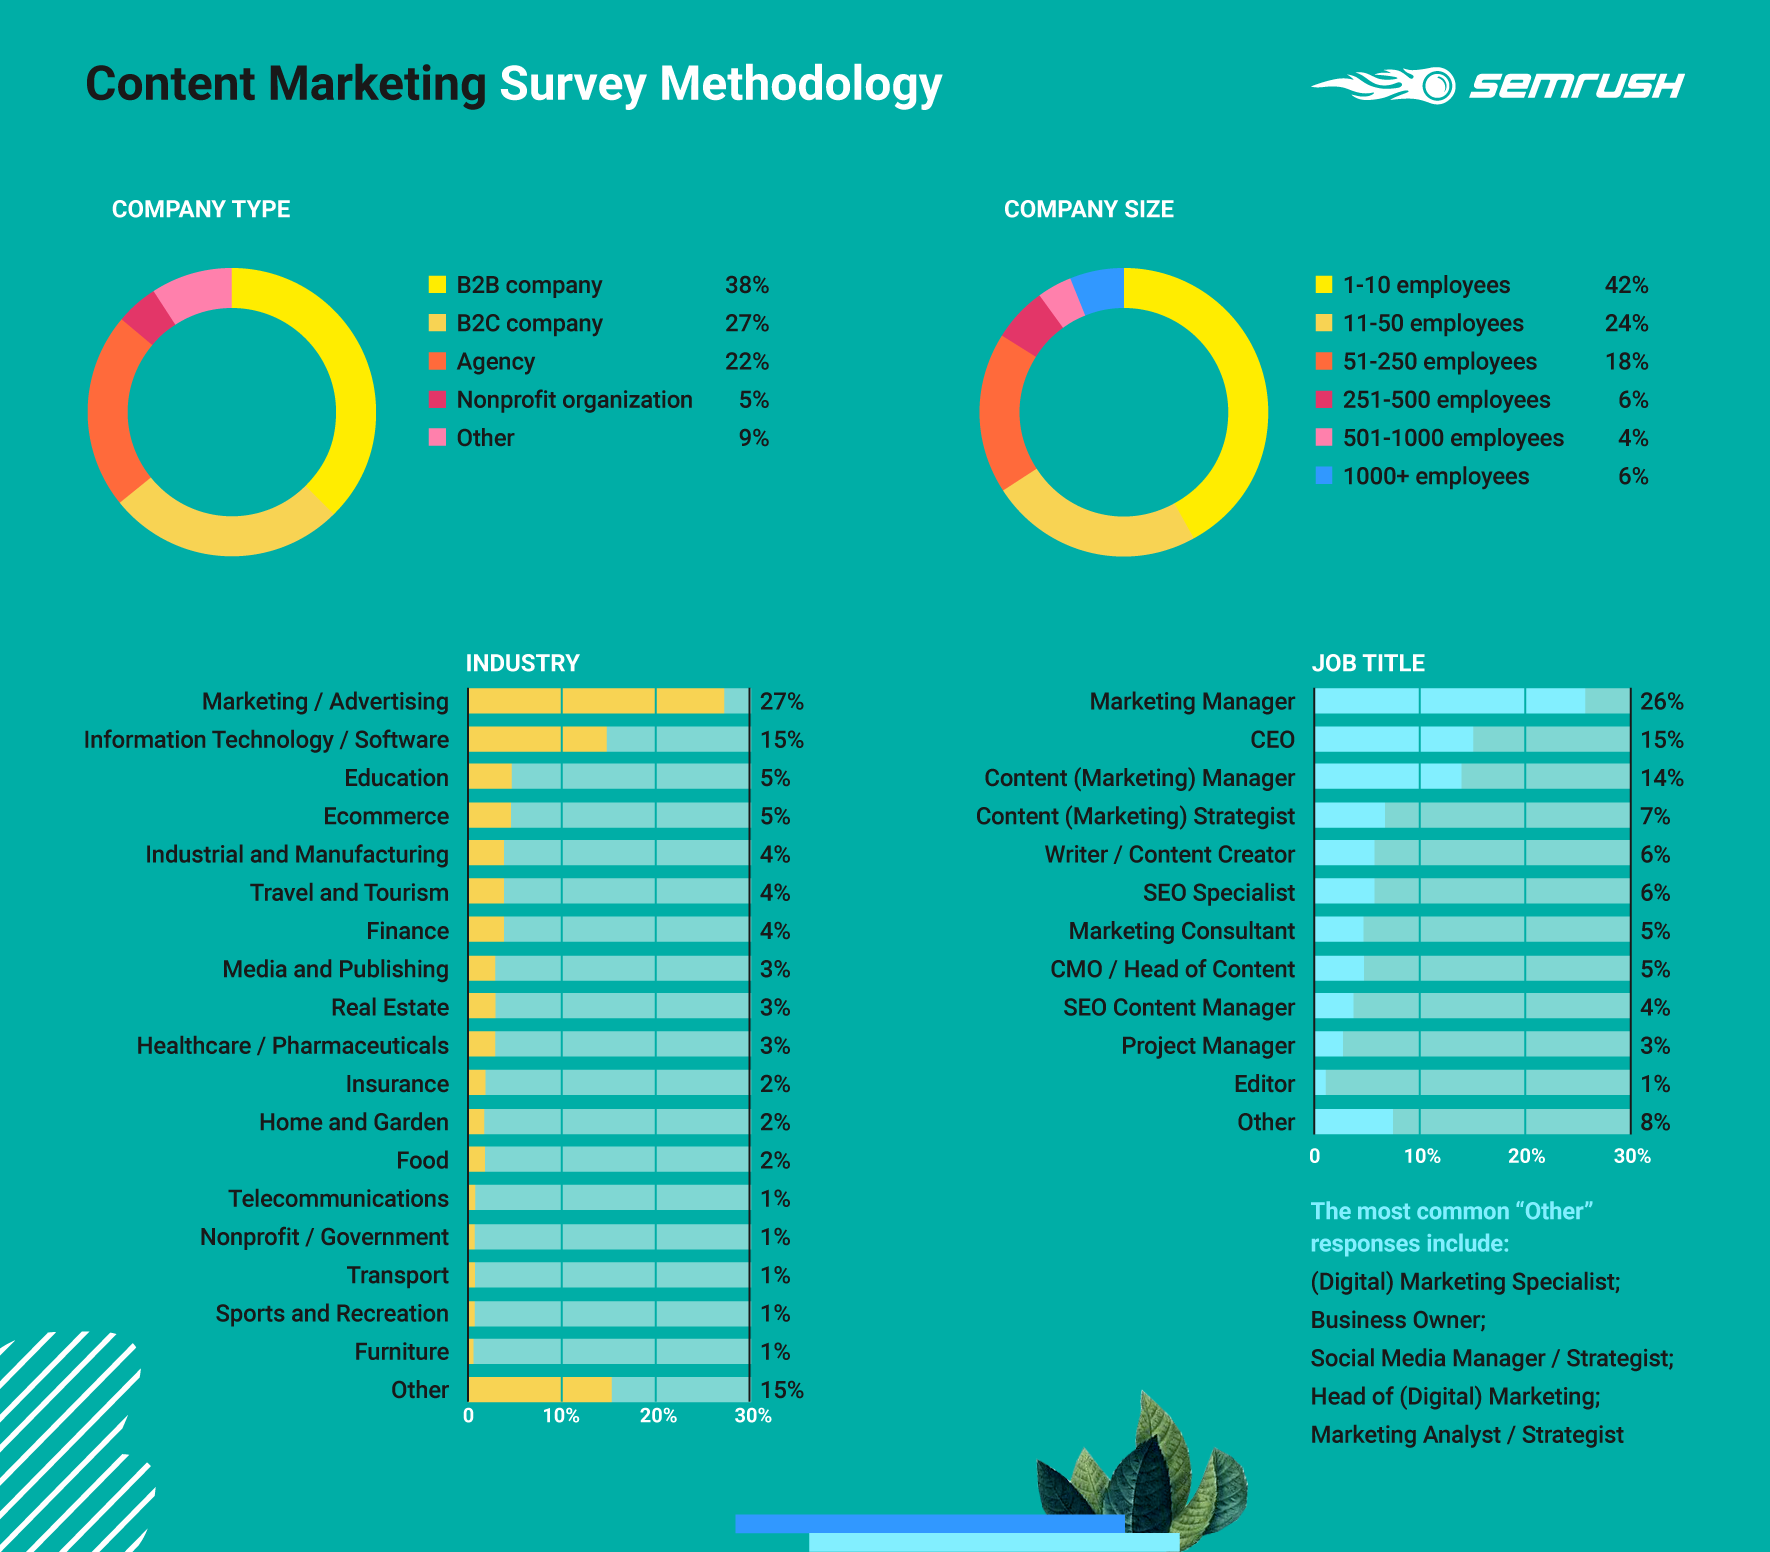 Content Marketing Survey Methodology